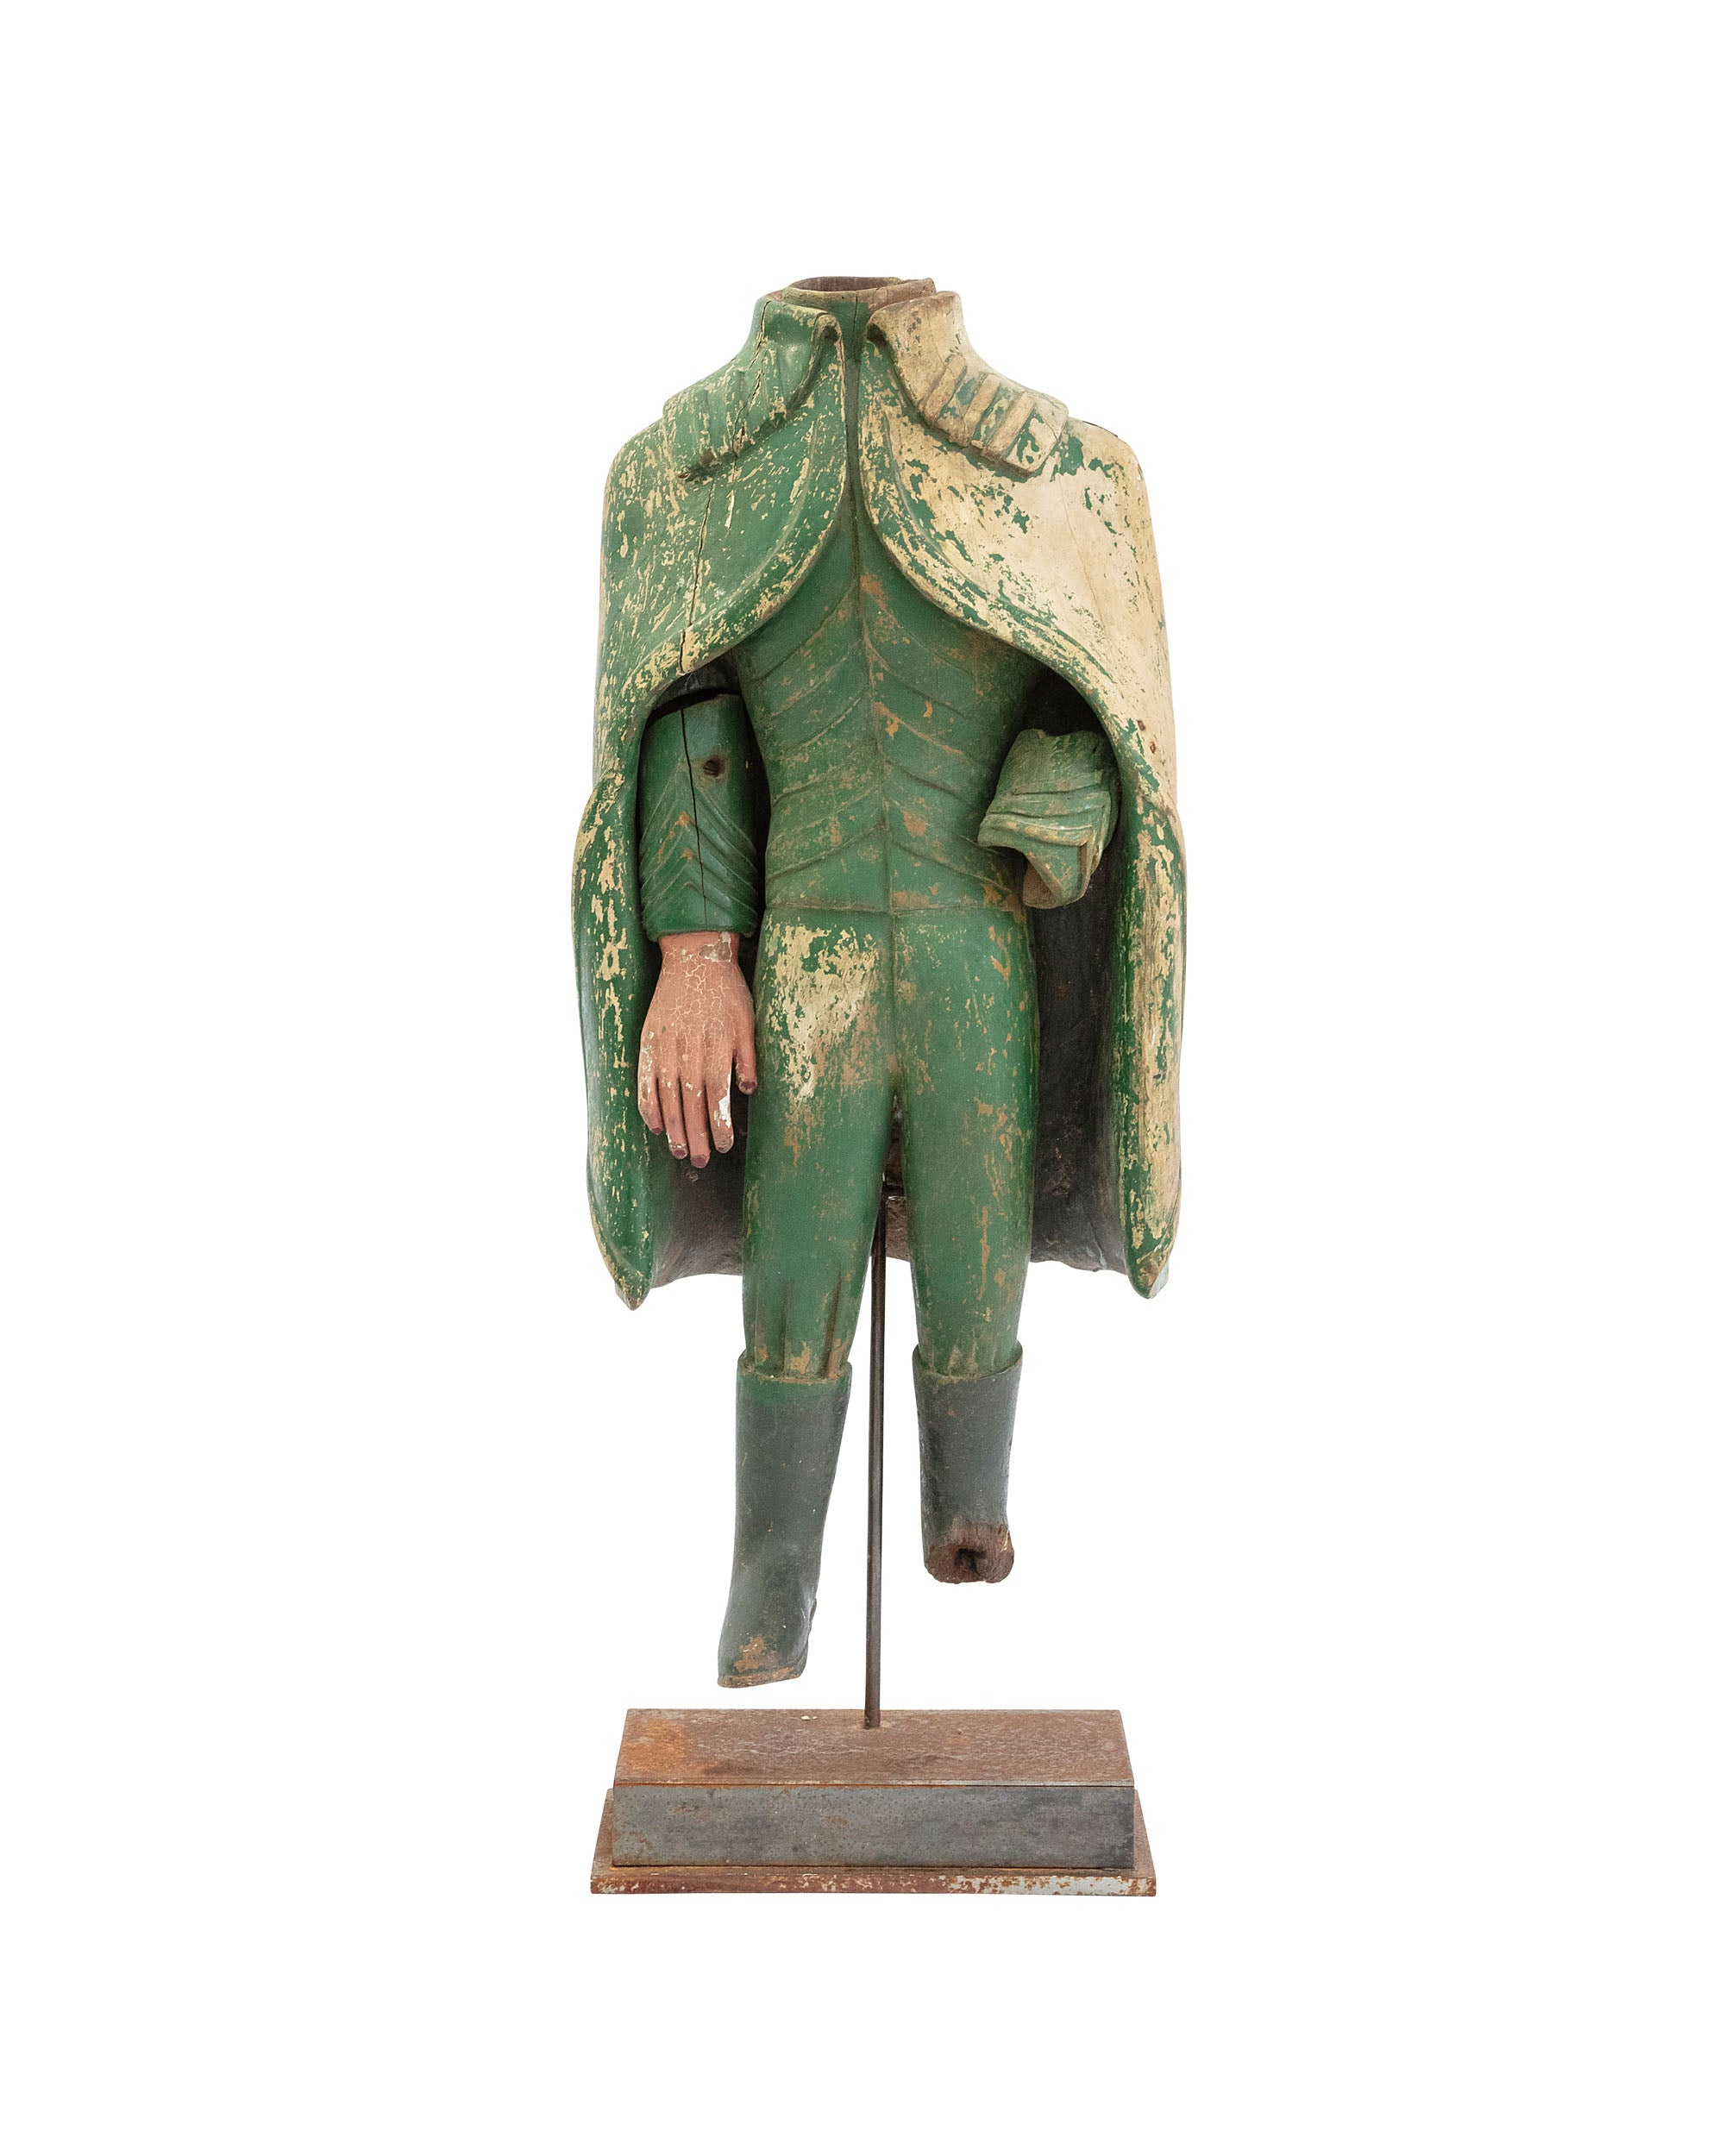 Soldier's body statue with a wooden layer on stand